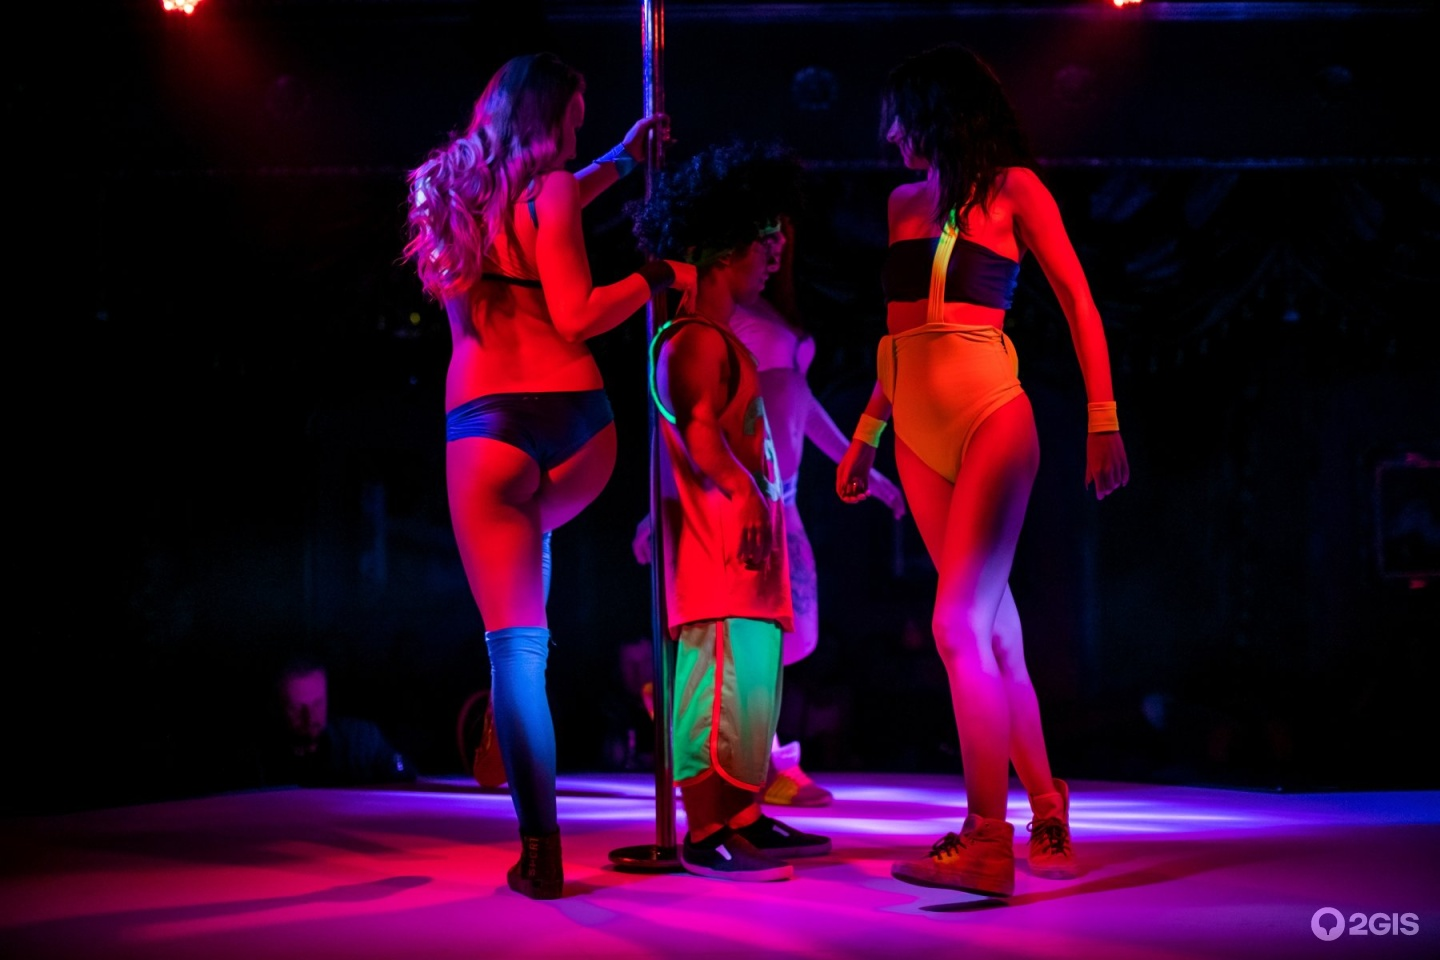 Charlie laine solo dance and striptease